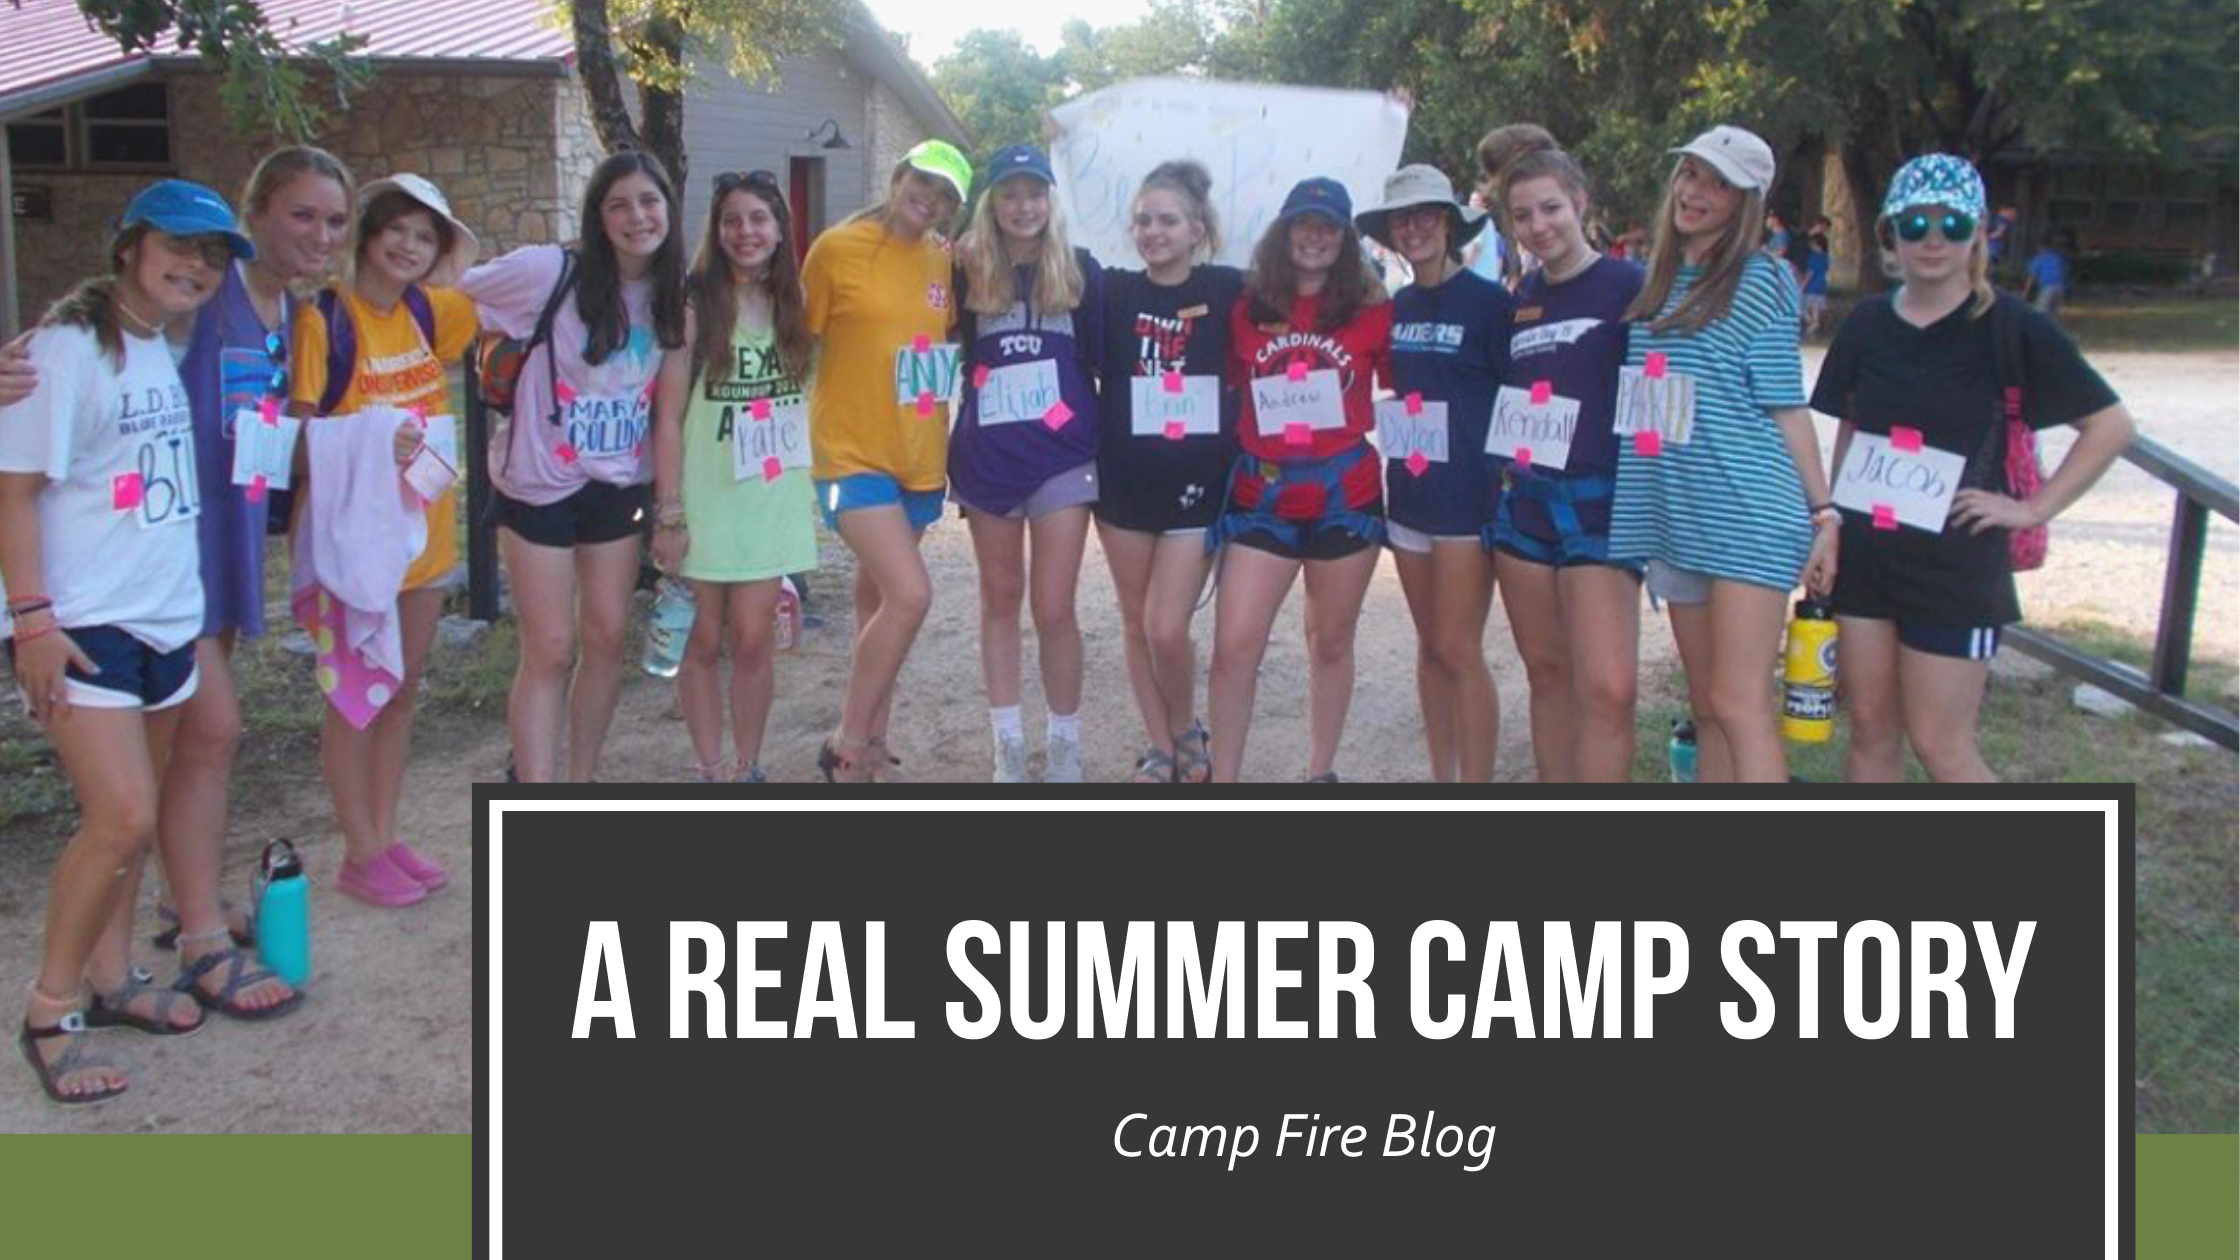 A REAL Summer Camp Story, image of campers with their arms around each other in a line